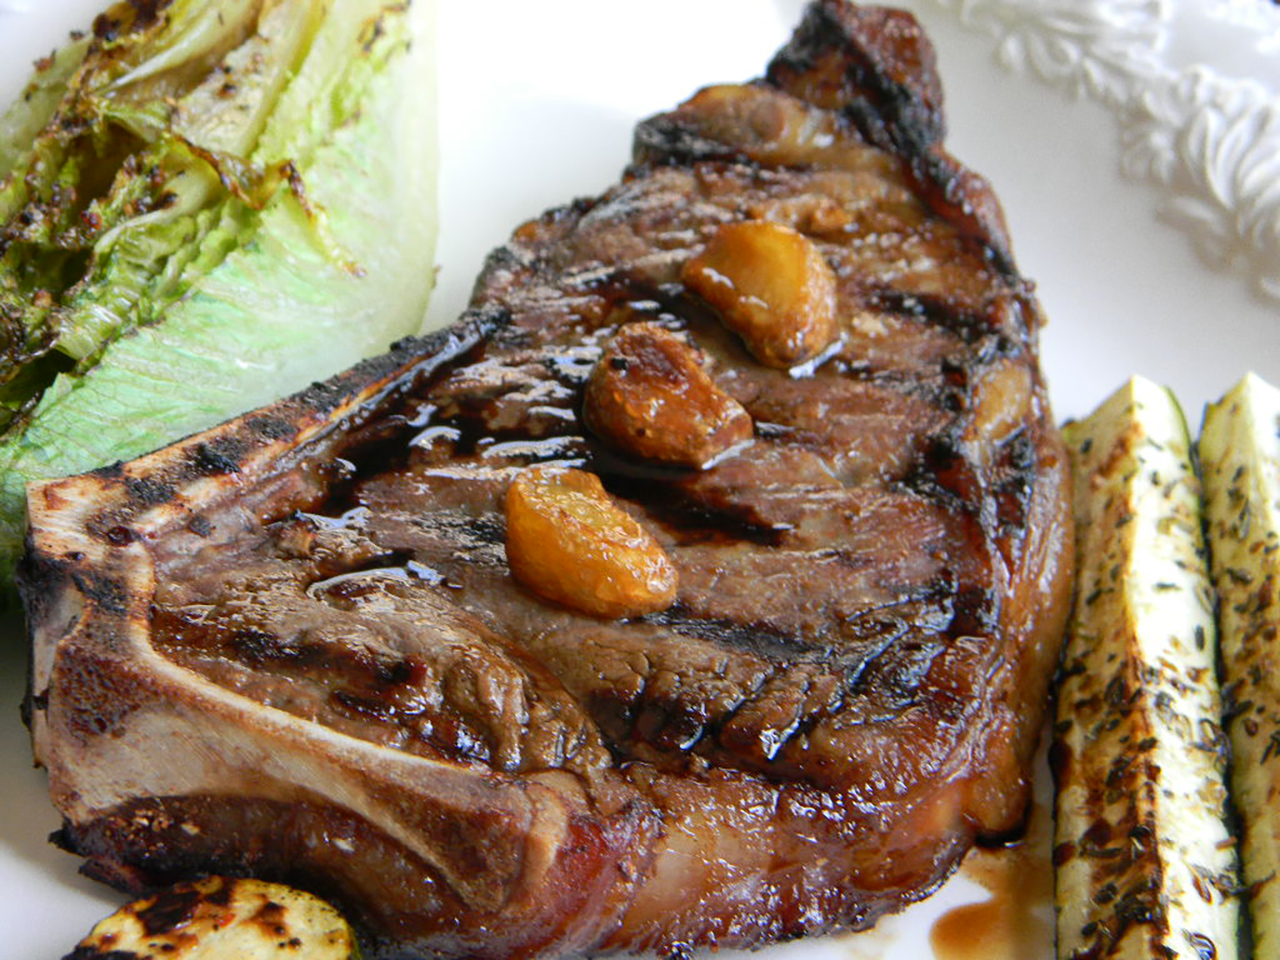 Garlic Steak with Garlic